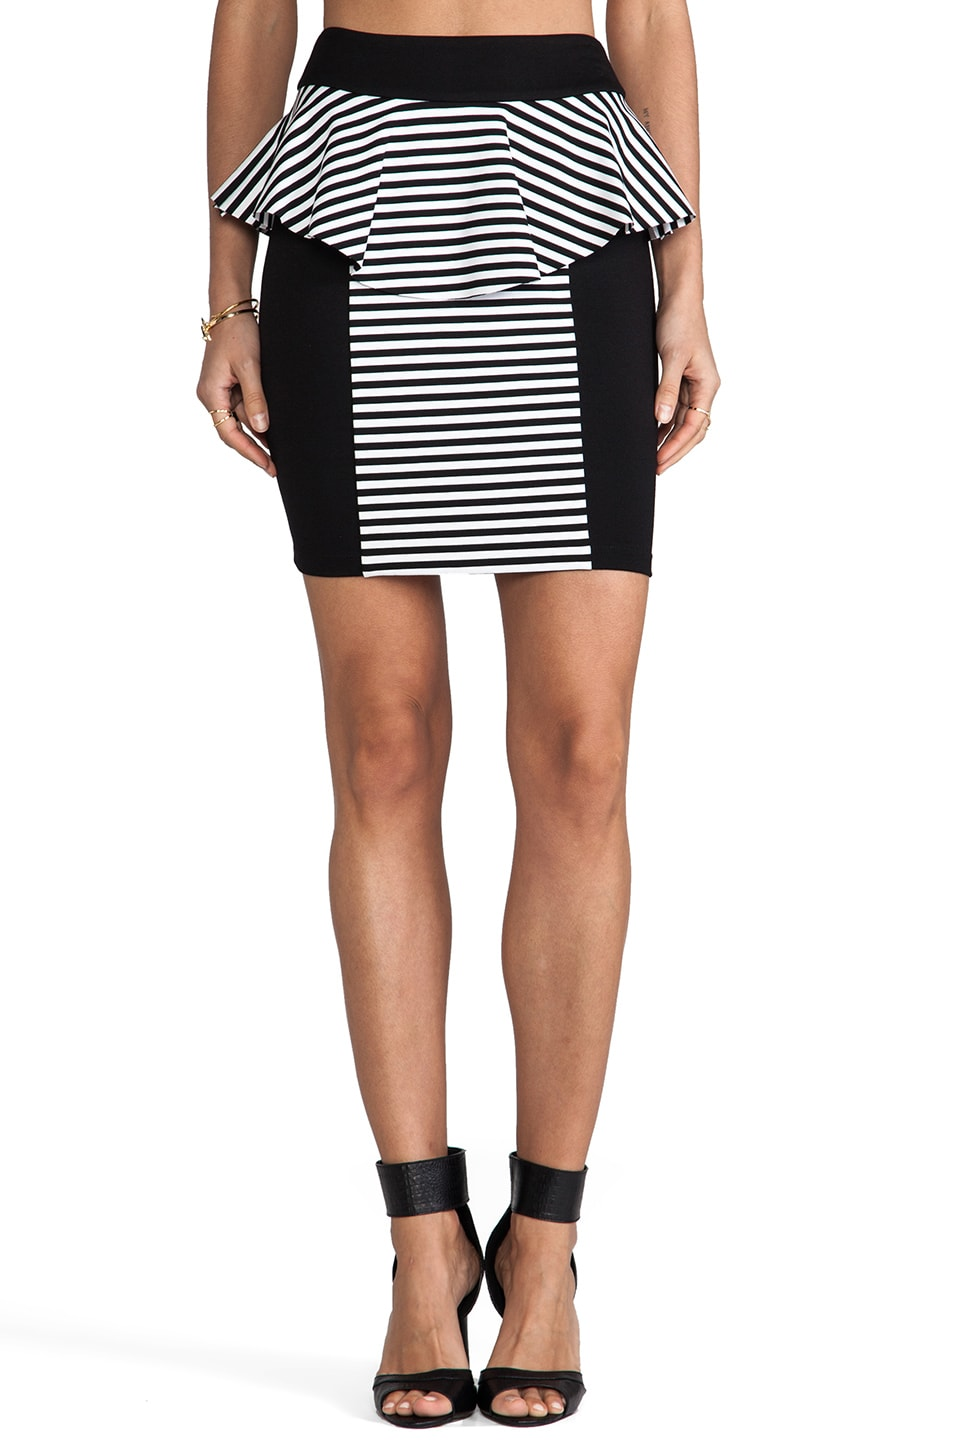 Torn by Ronny Kobo Lisa Skirt in Black/White Stripe